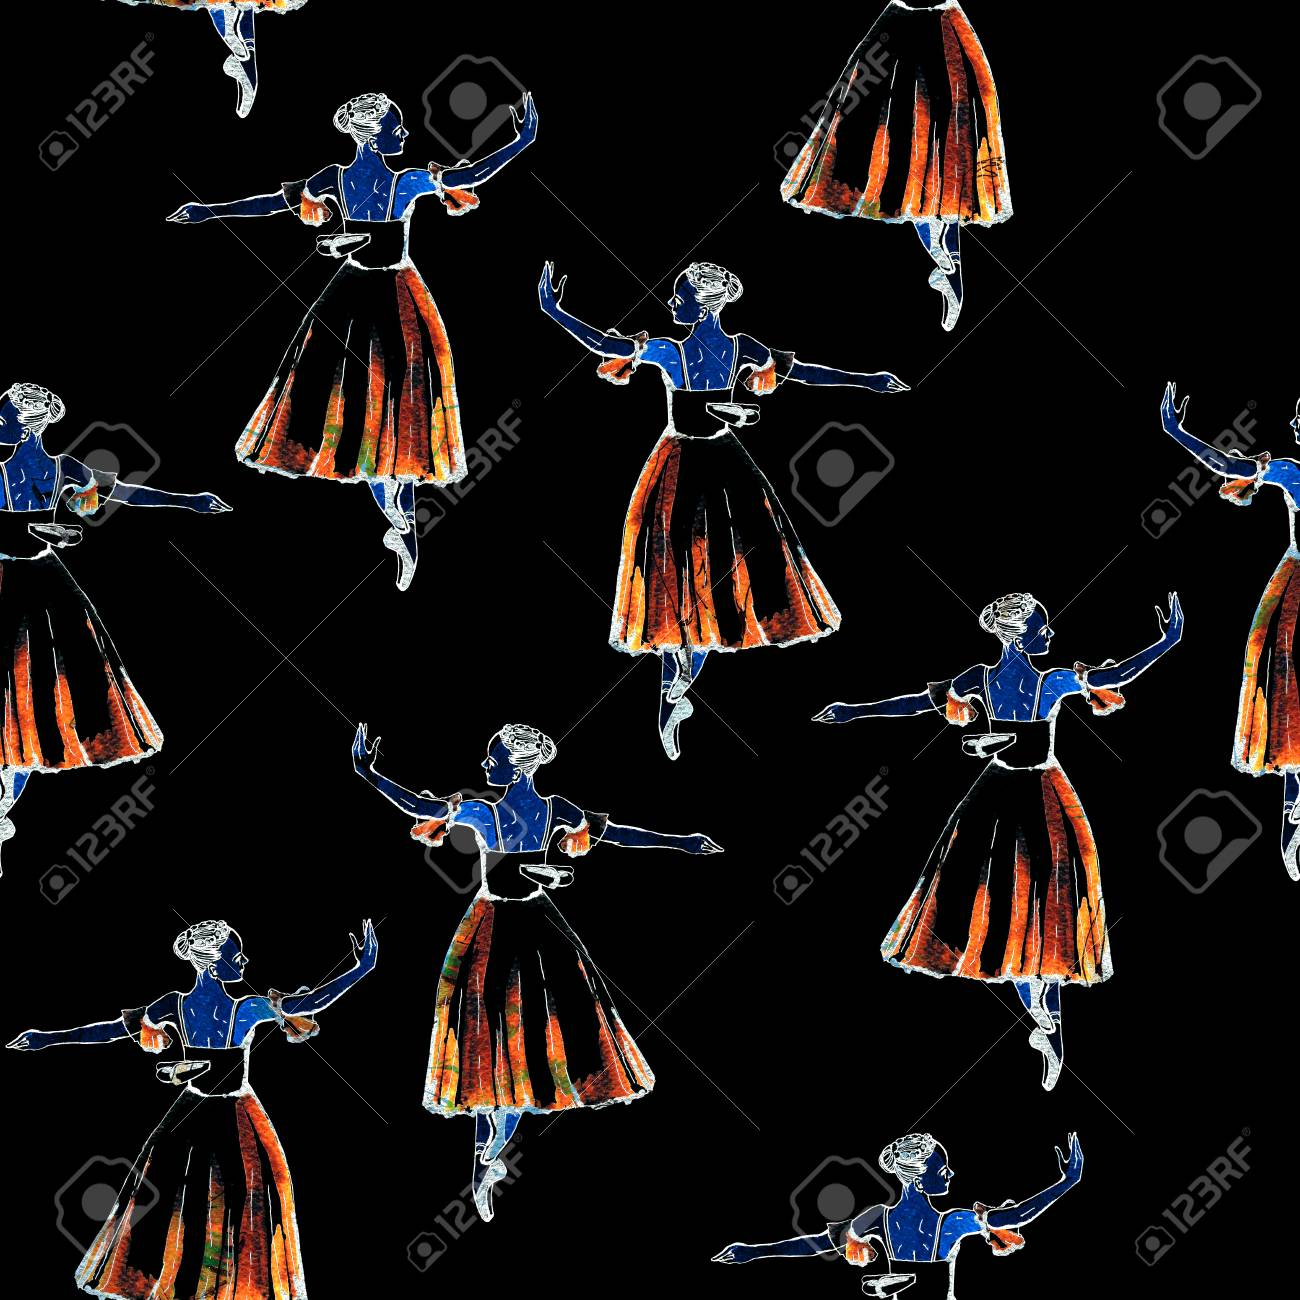 Seamless pattern of ballet dancers royalty free stock photography - Seamless Pattern Of Ballet Dancers In Silfide Costume Freehand Drawing Watercolor Painting Inverted